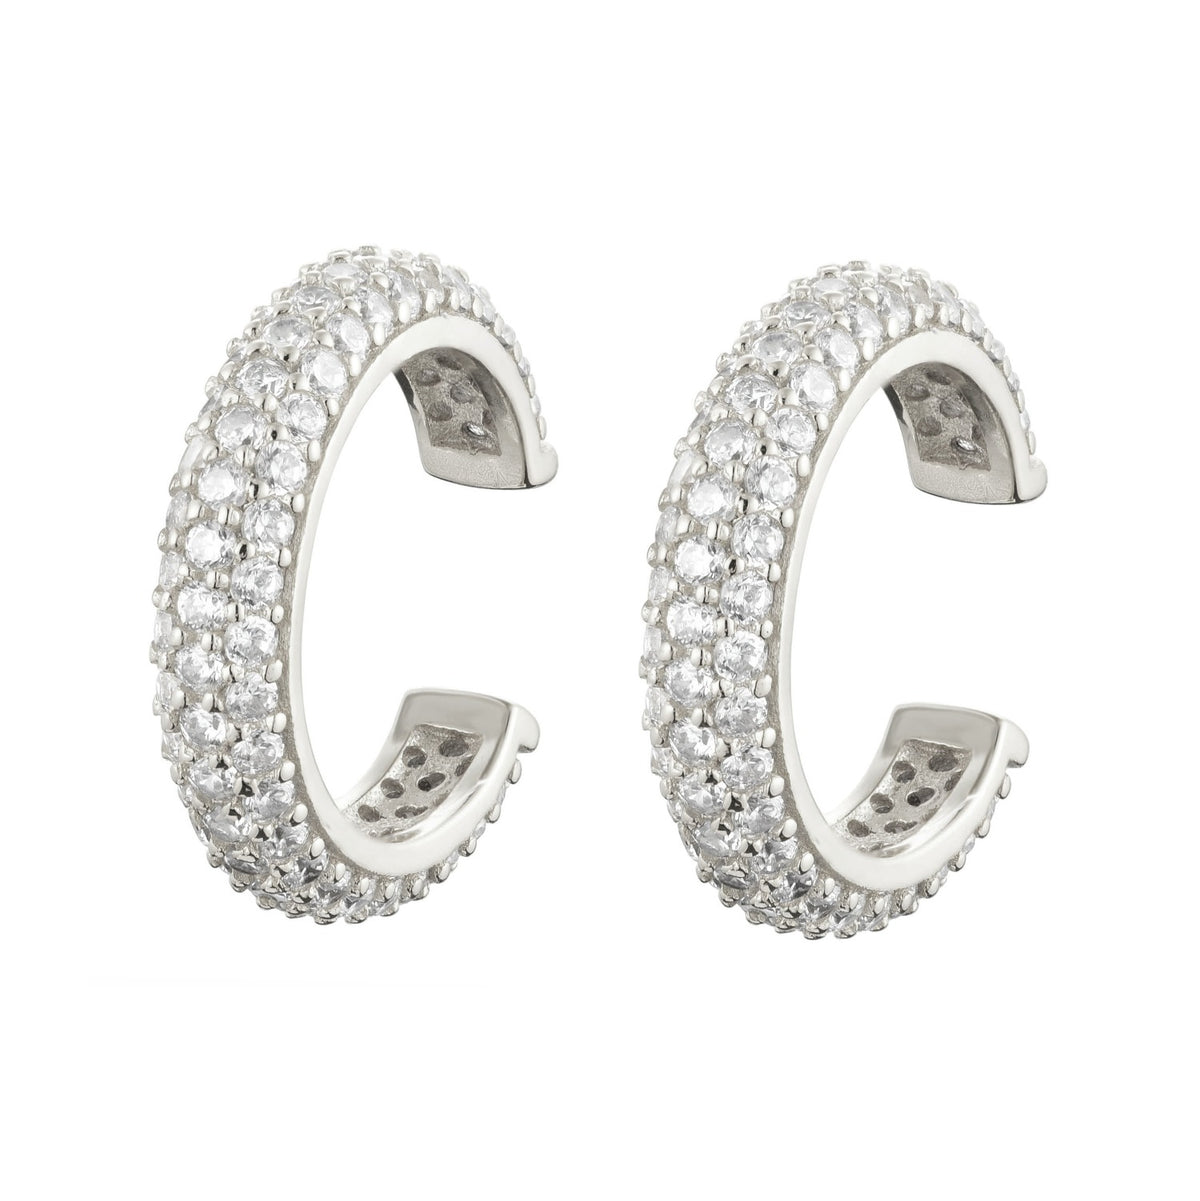 Fortuna | Turin Cuffs | 925 Silver | White CZ | White Rhodium Plated